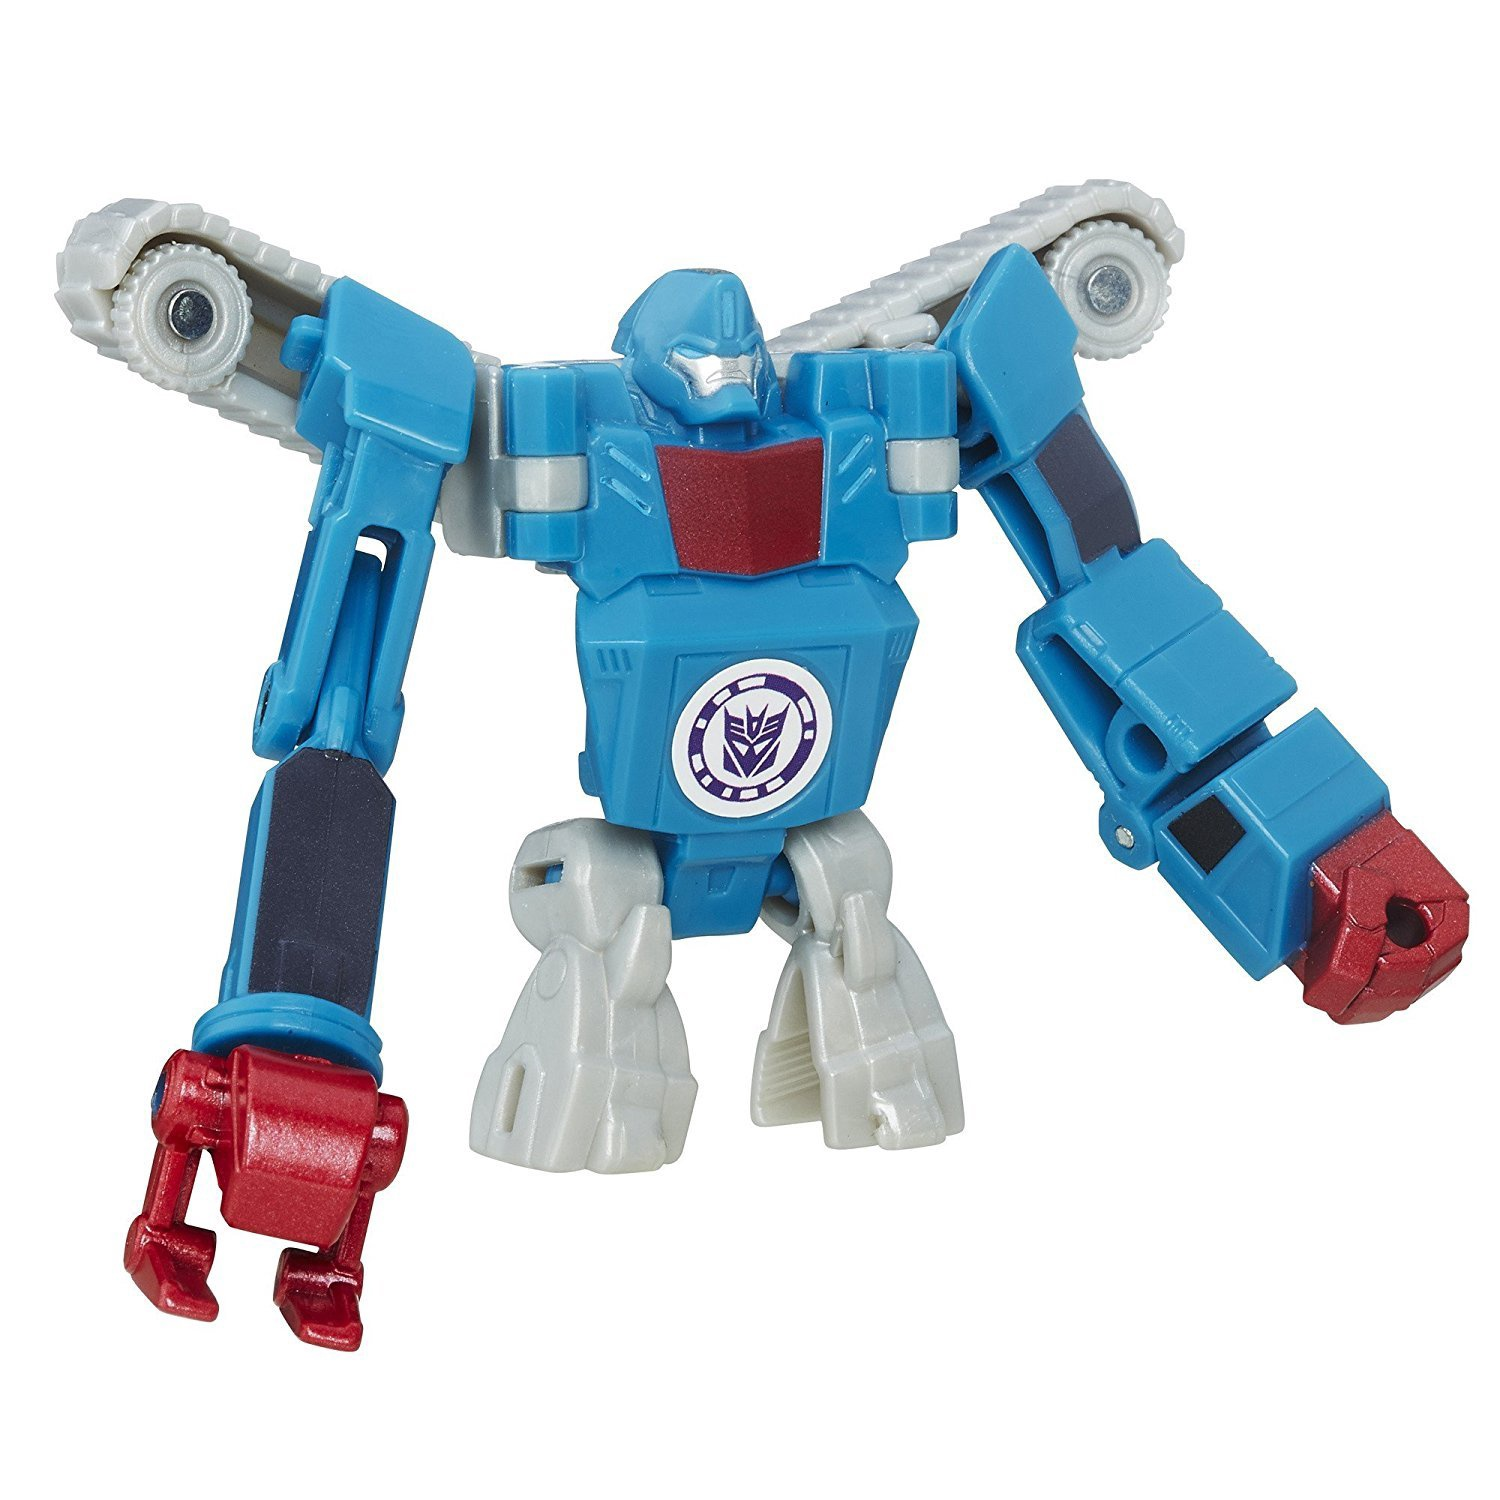 TRANSFORMERS ROBOTS IN DISGUISE GROUNDBUSTER